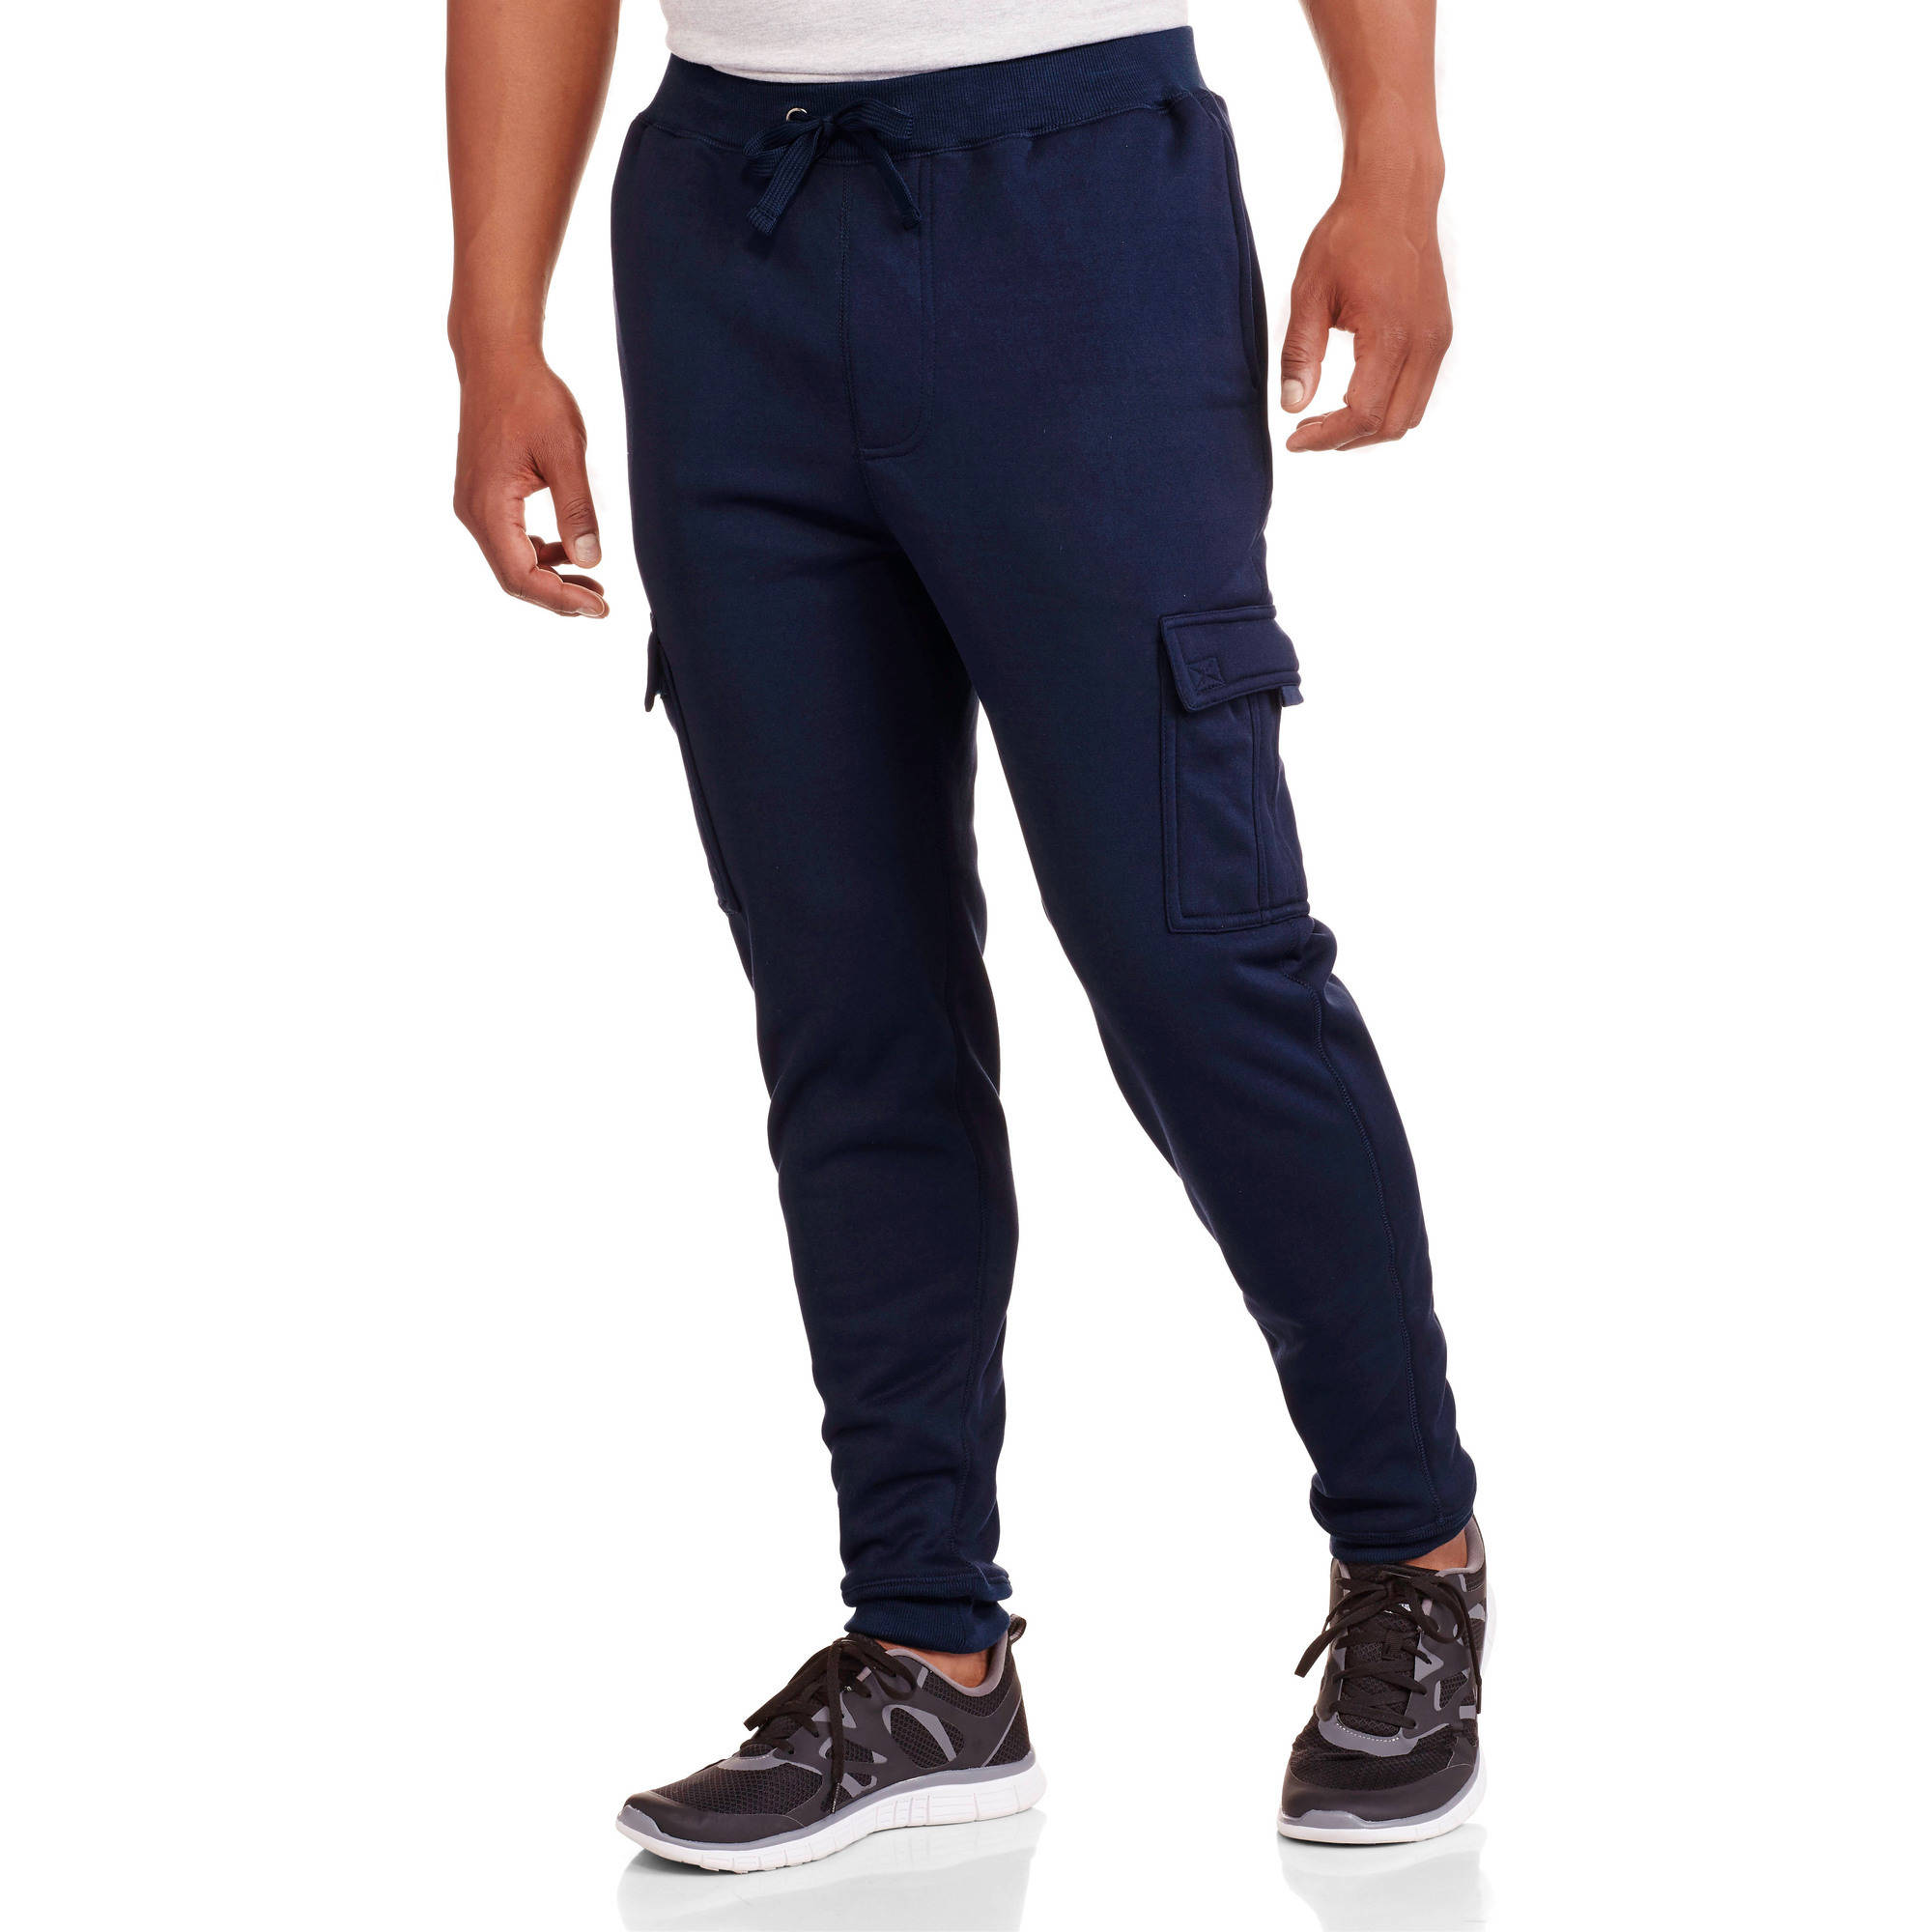 Big Men's Elastic Waist Solid Fleece Cargo Pant